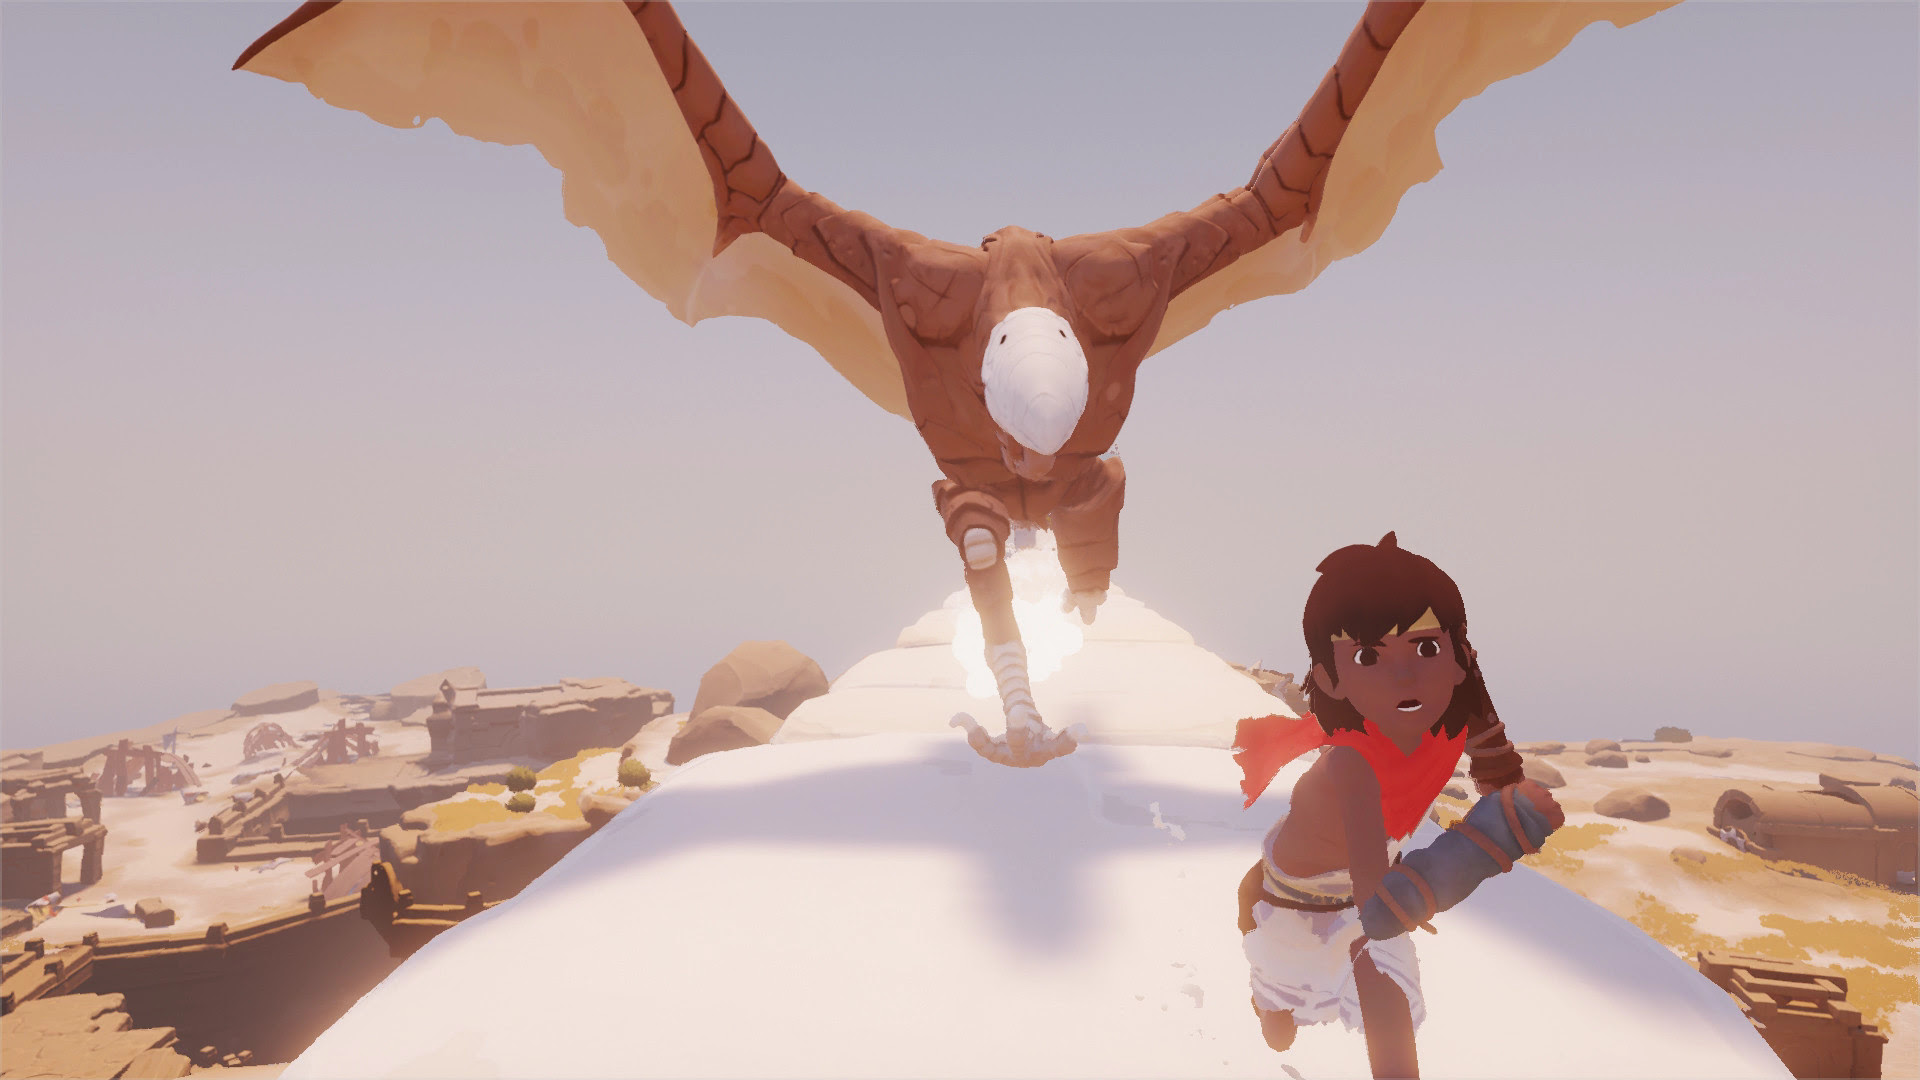 The DRM protection for Rime was cracked in mere days, so the publisher is removing it screenshot